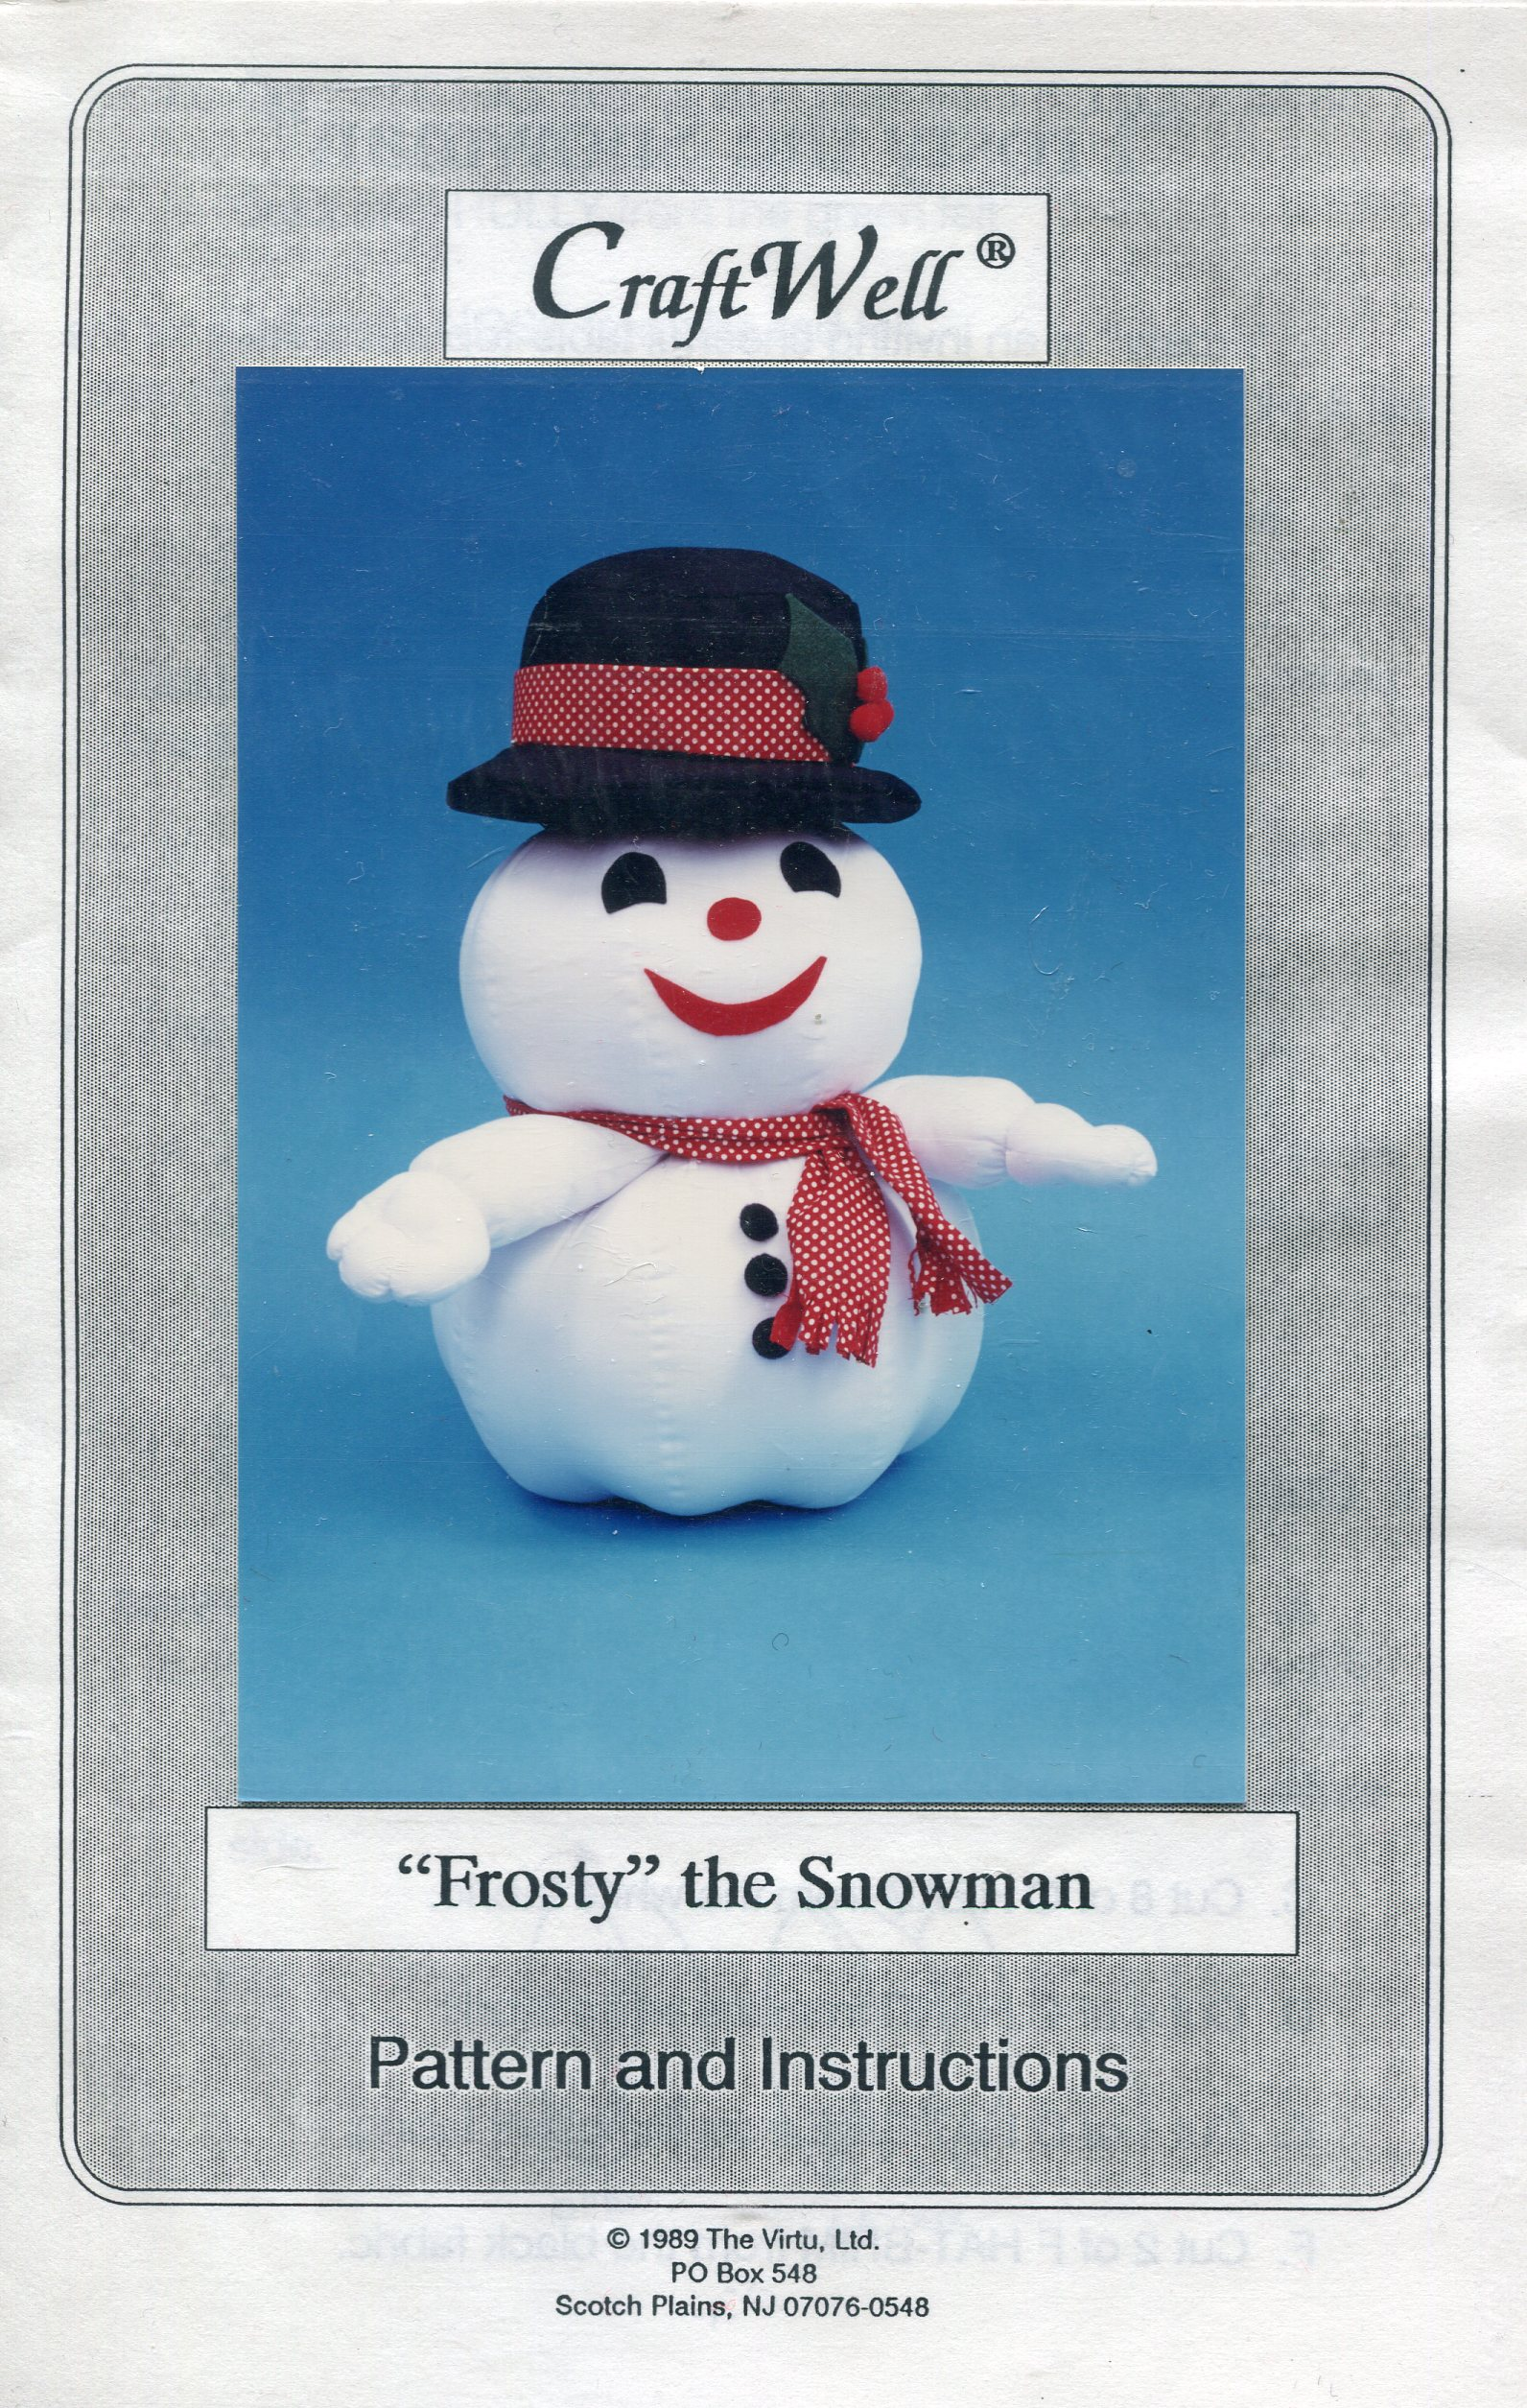 CraftWell Frosty the Snowman